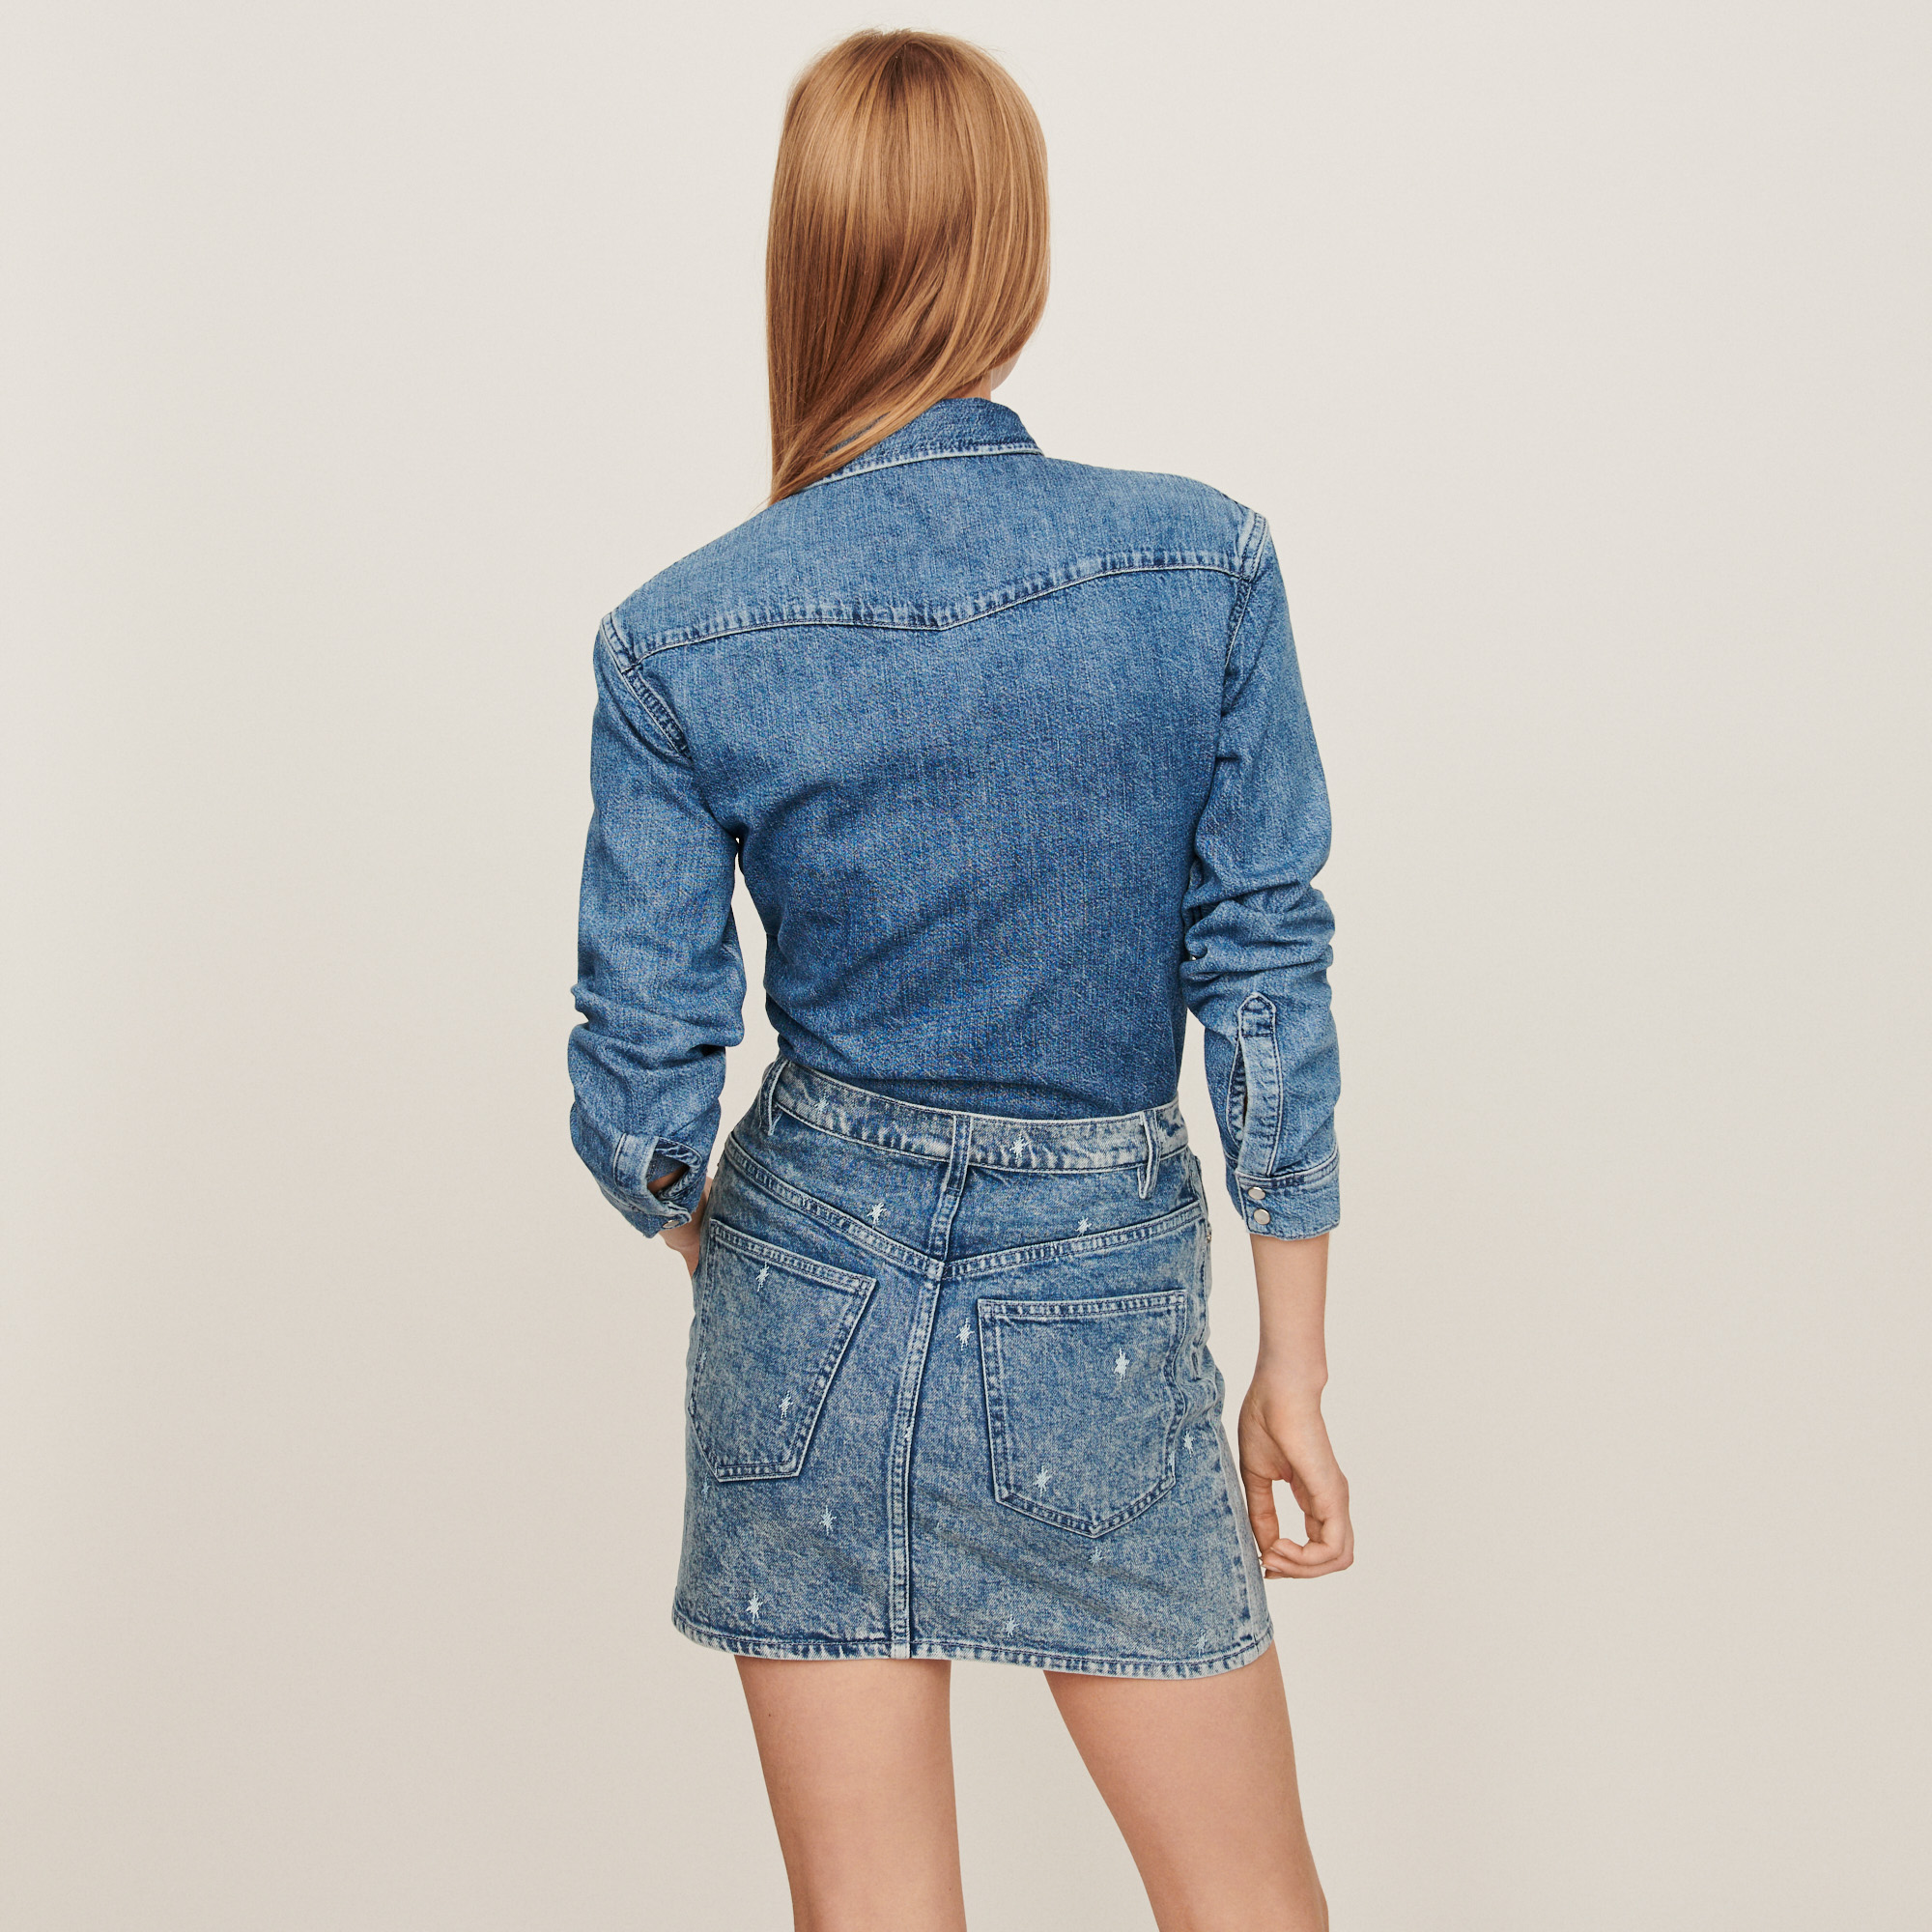 Faded jean shirt - Blue